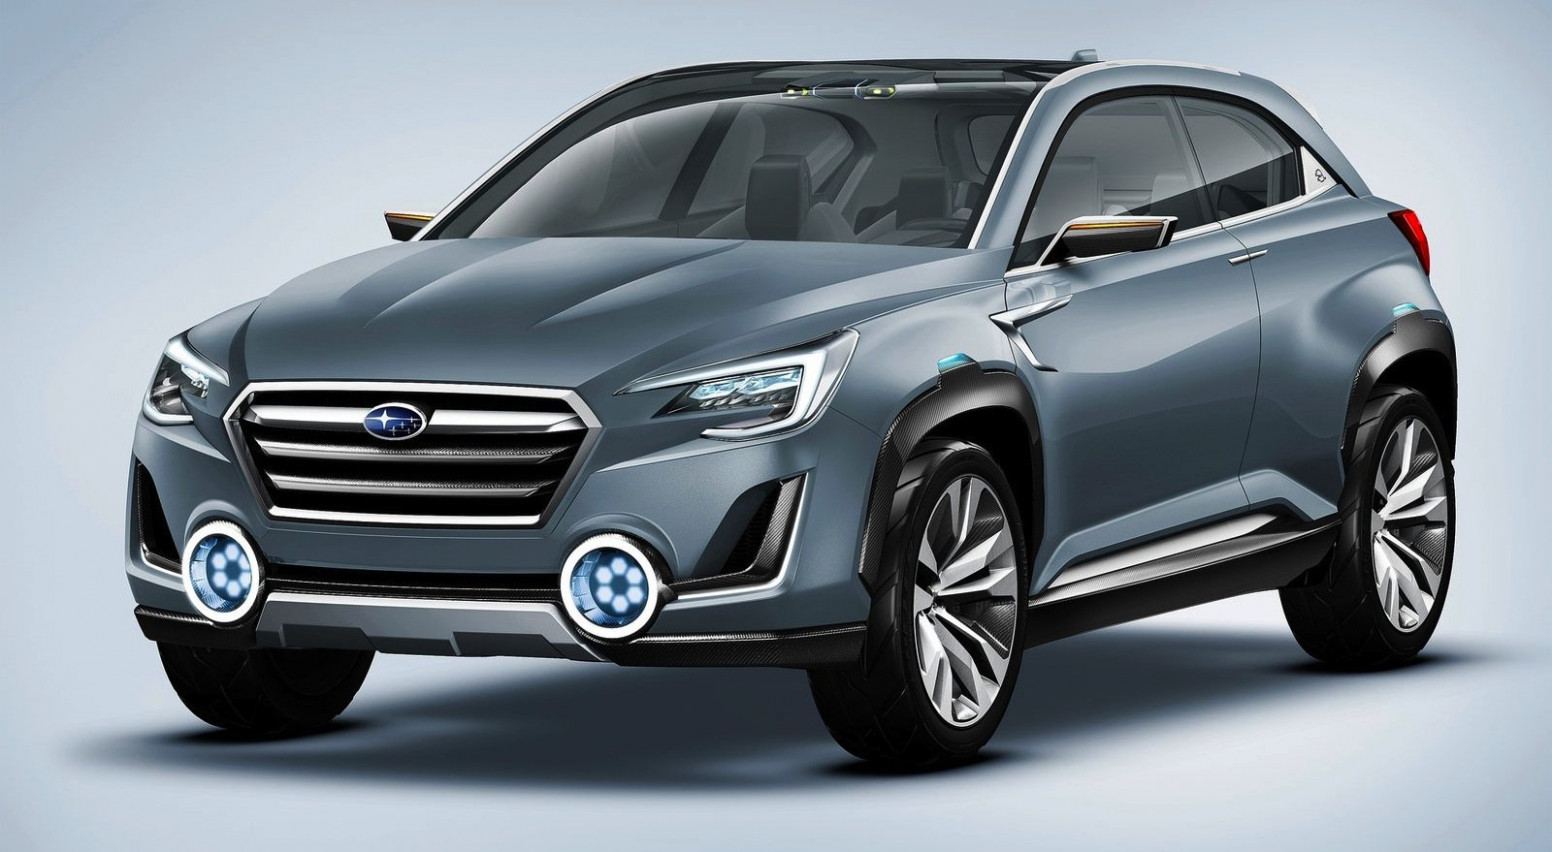 Exterior and Interior Subaru Prominence 2022